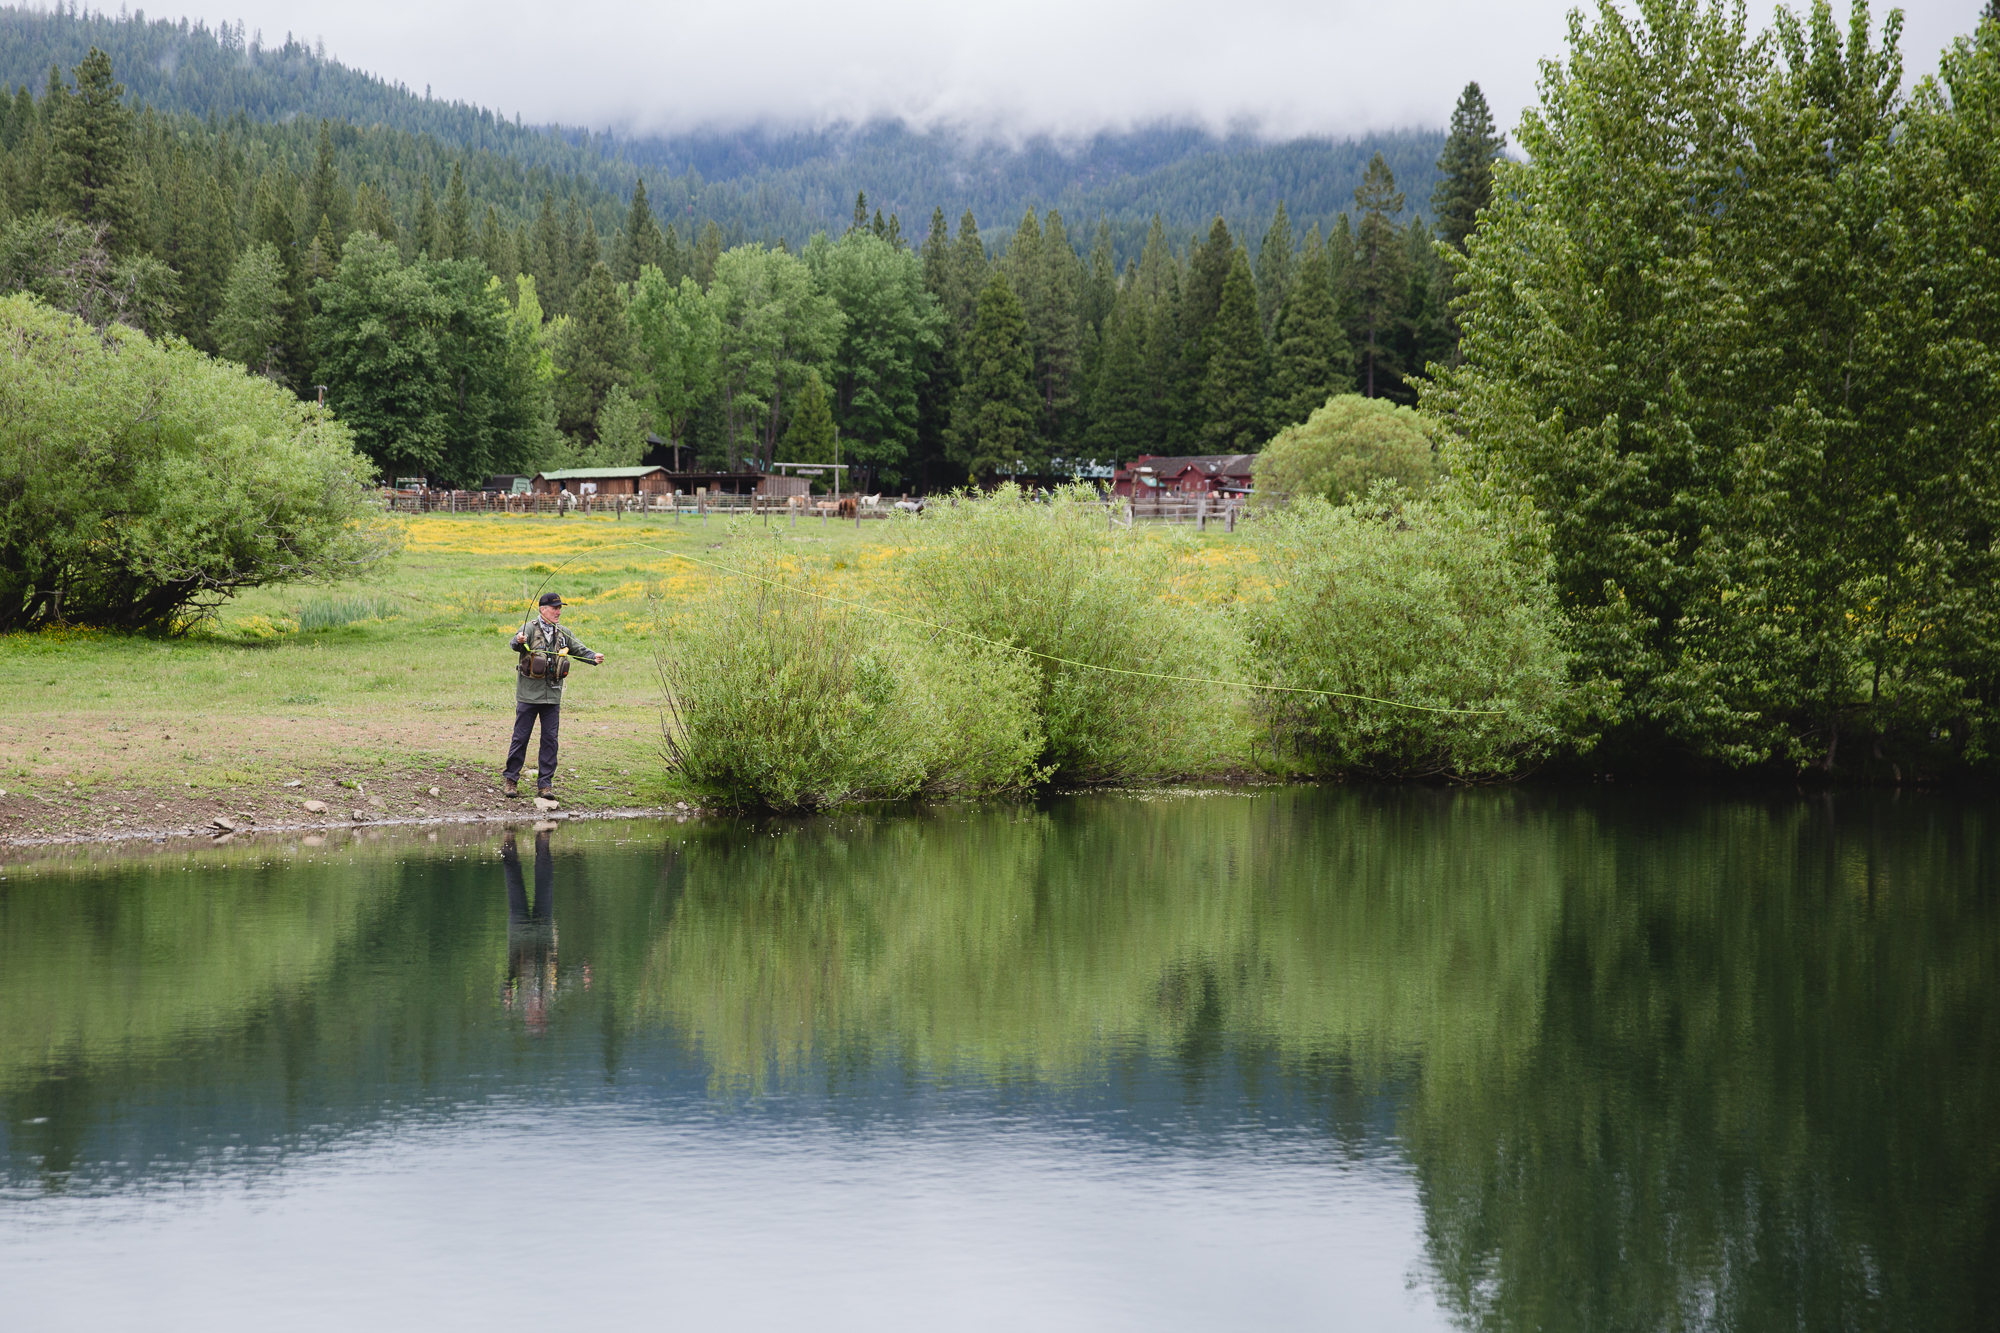 Fly fishing is available to guests of Greenhorn Ranch thanks to our Orvis Certified Guide